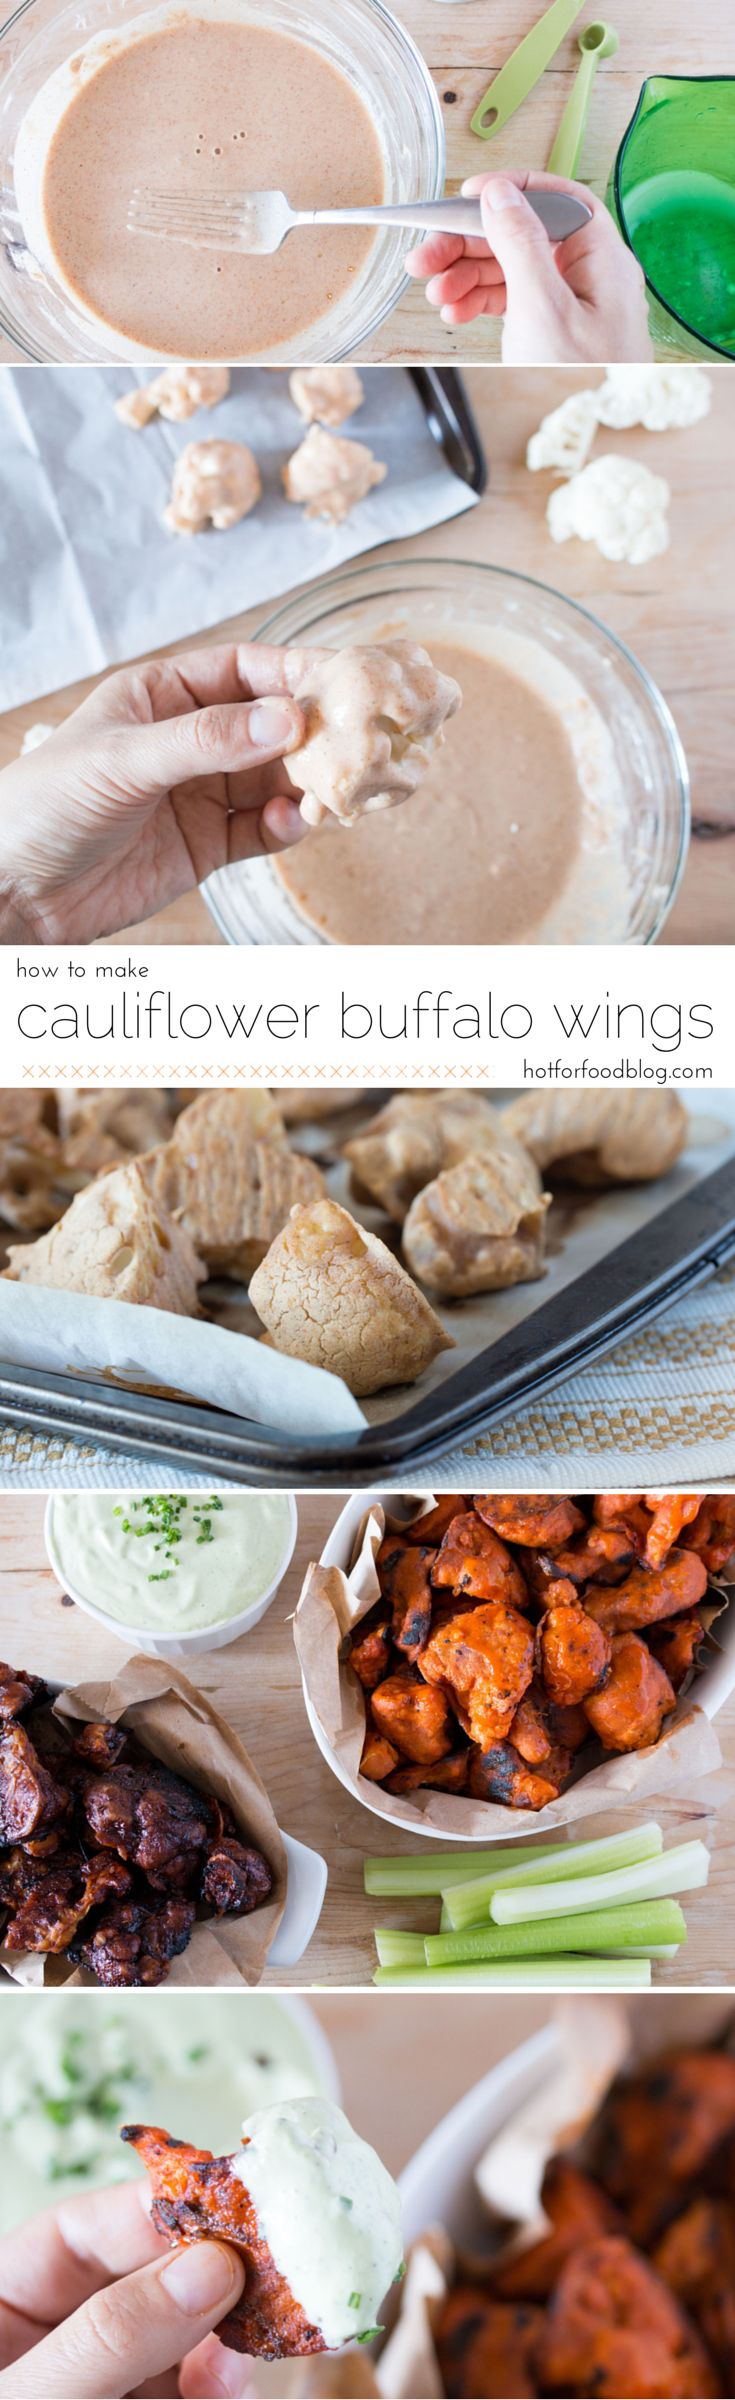 how to make #vegan cauliflower buffalo wings | RECIPE on hotforfoodblog.com